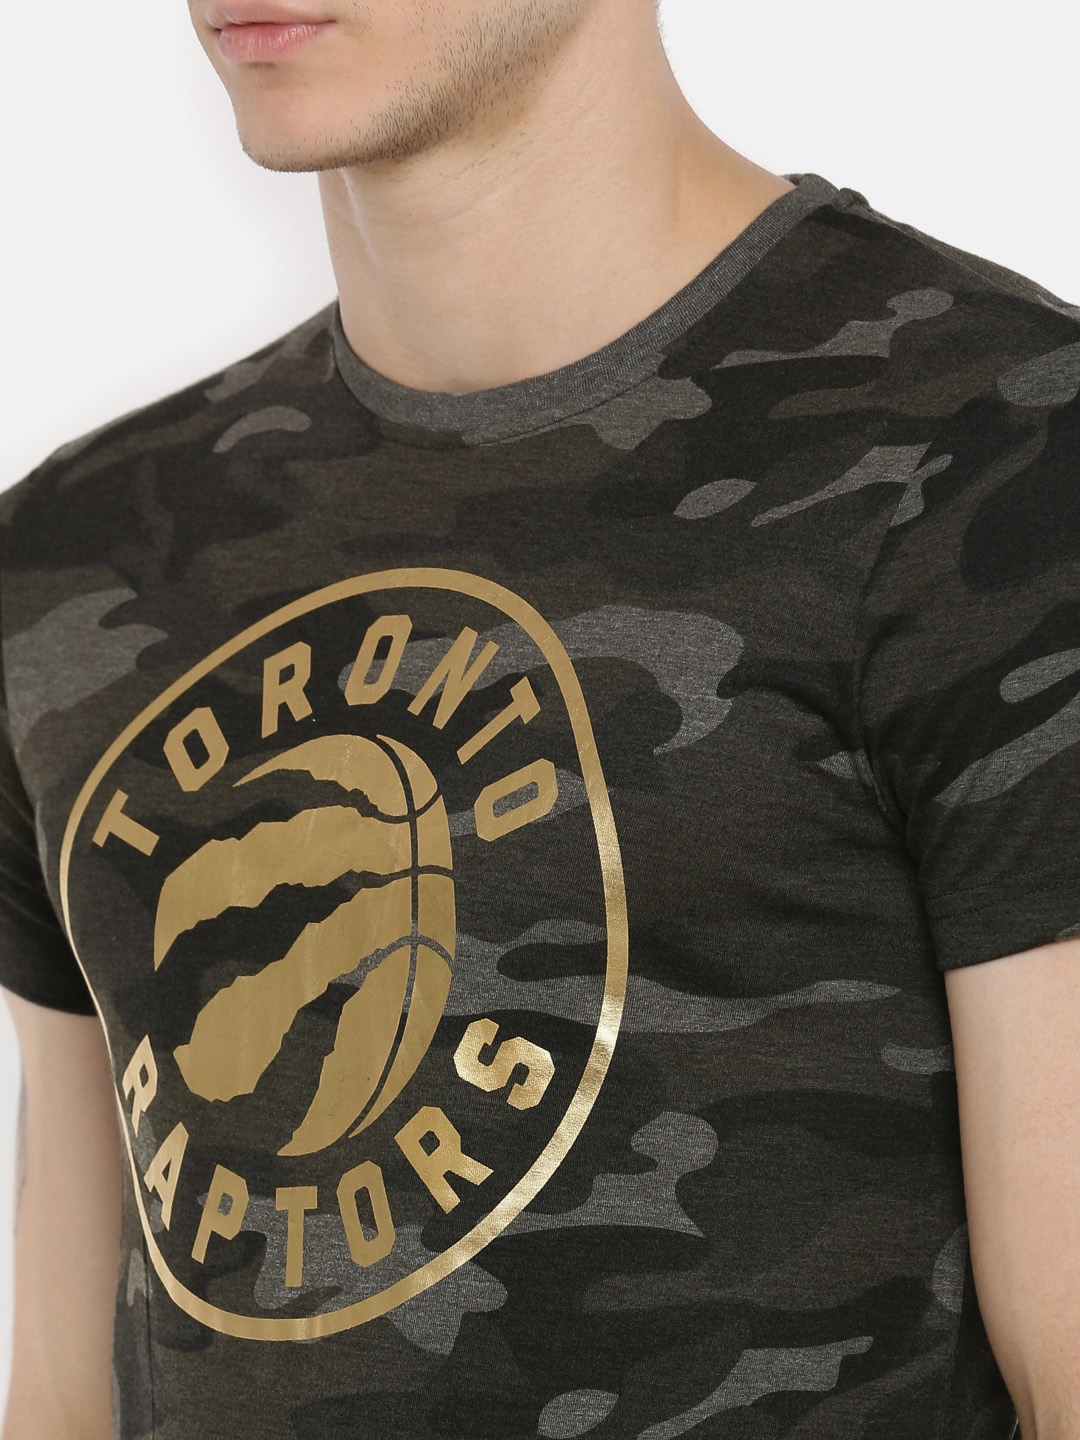 86a33adfa Where Can I Get T Shirts Printed In Toronto – EDGE Engineering and ...